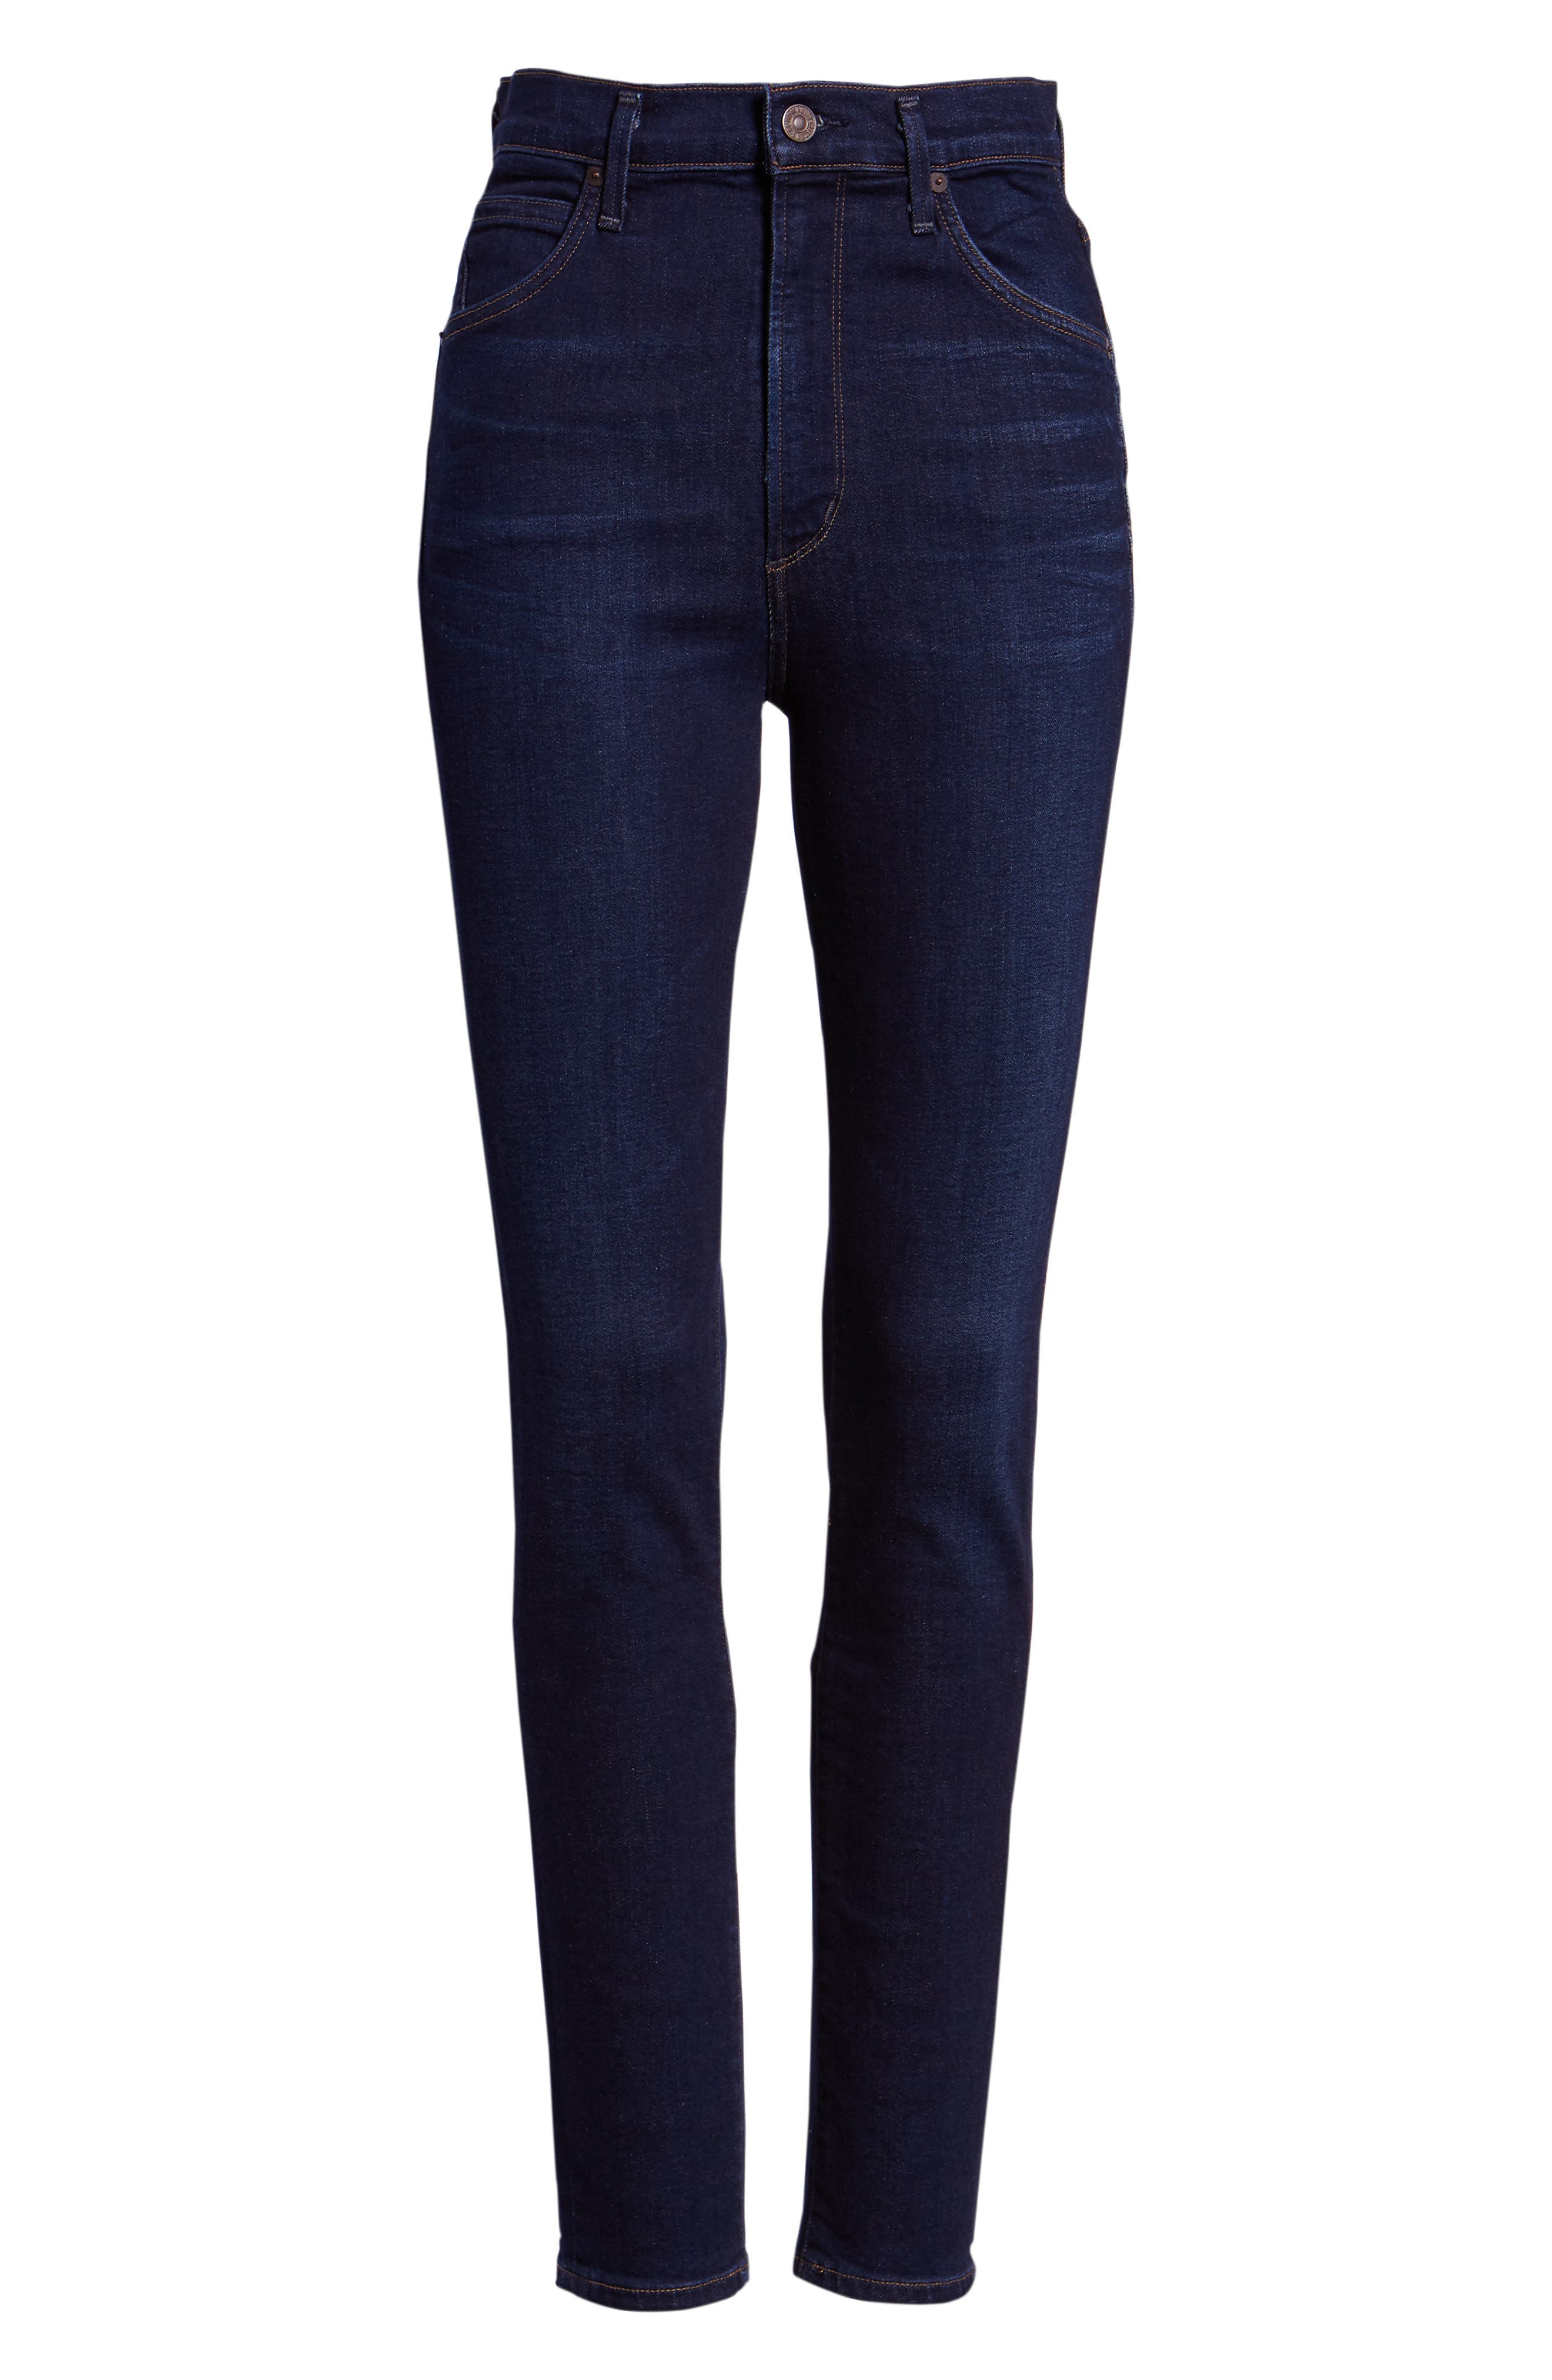 Chrissy High Waist Skinny Jeans,                             Alternate thumbnail 7, color,                             GALAXY